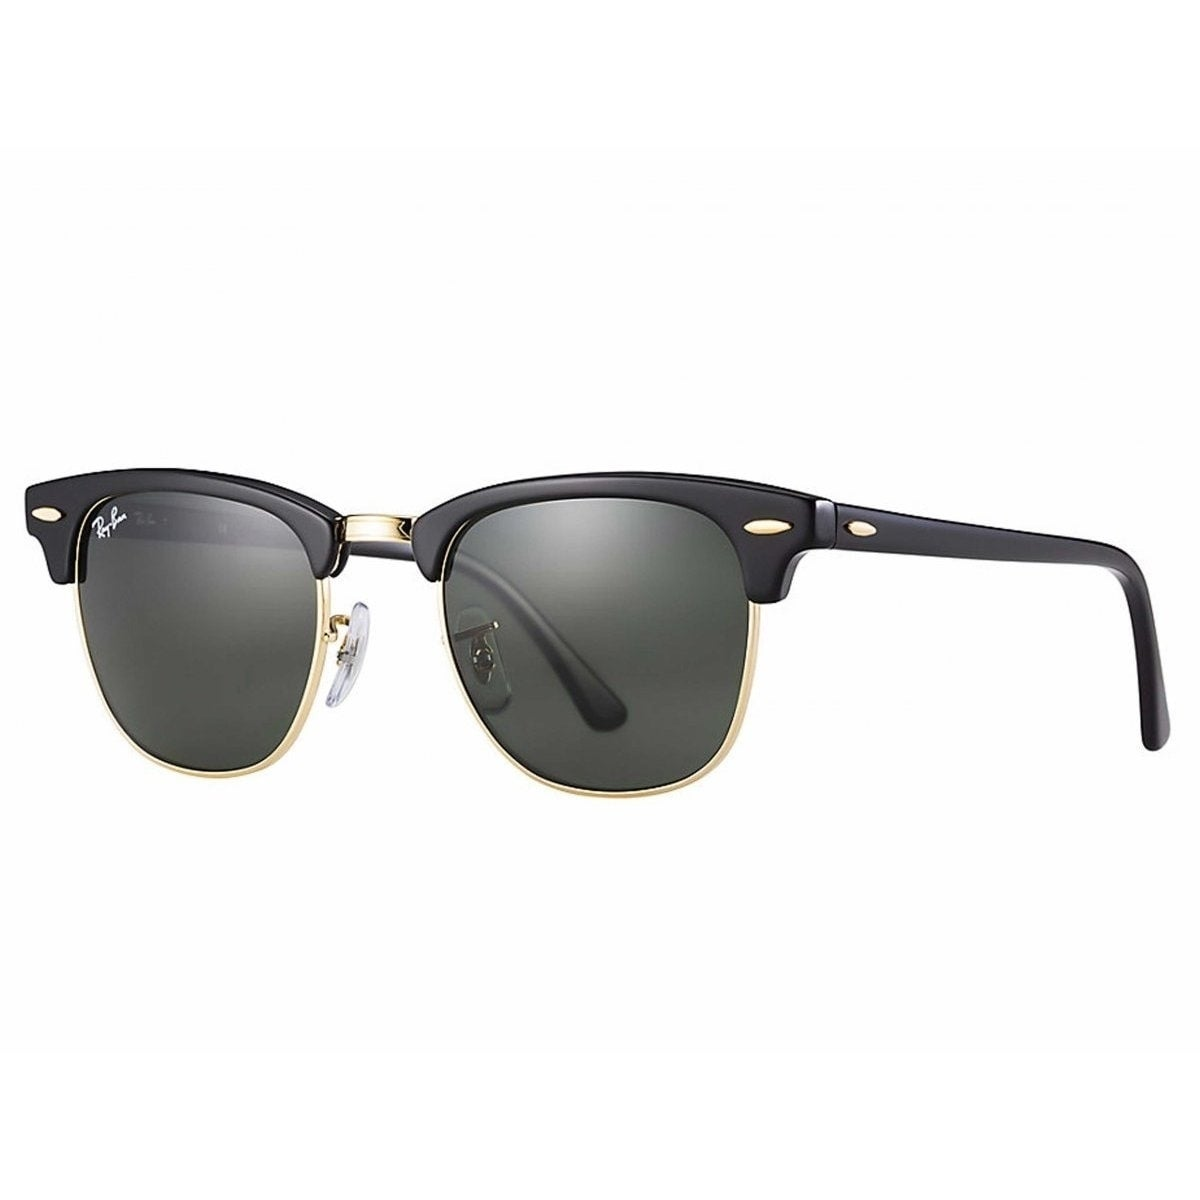 9fd35abf90 Ray-Ban RB3507 136 N5 Clubmaster Aluminum Black Frame Polarized Green 51mm  Lens Sunglasses